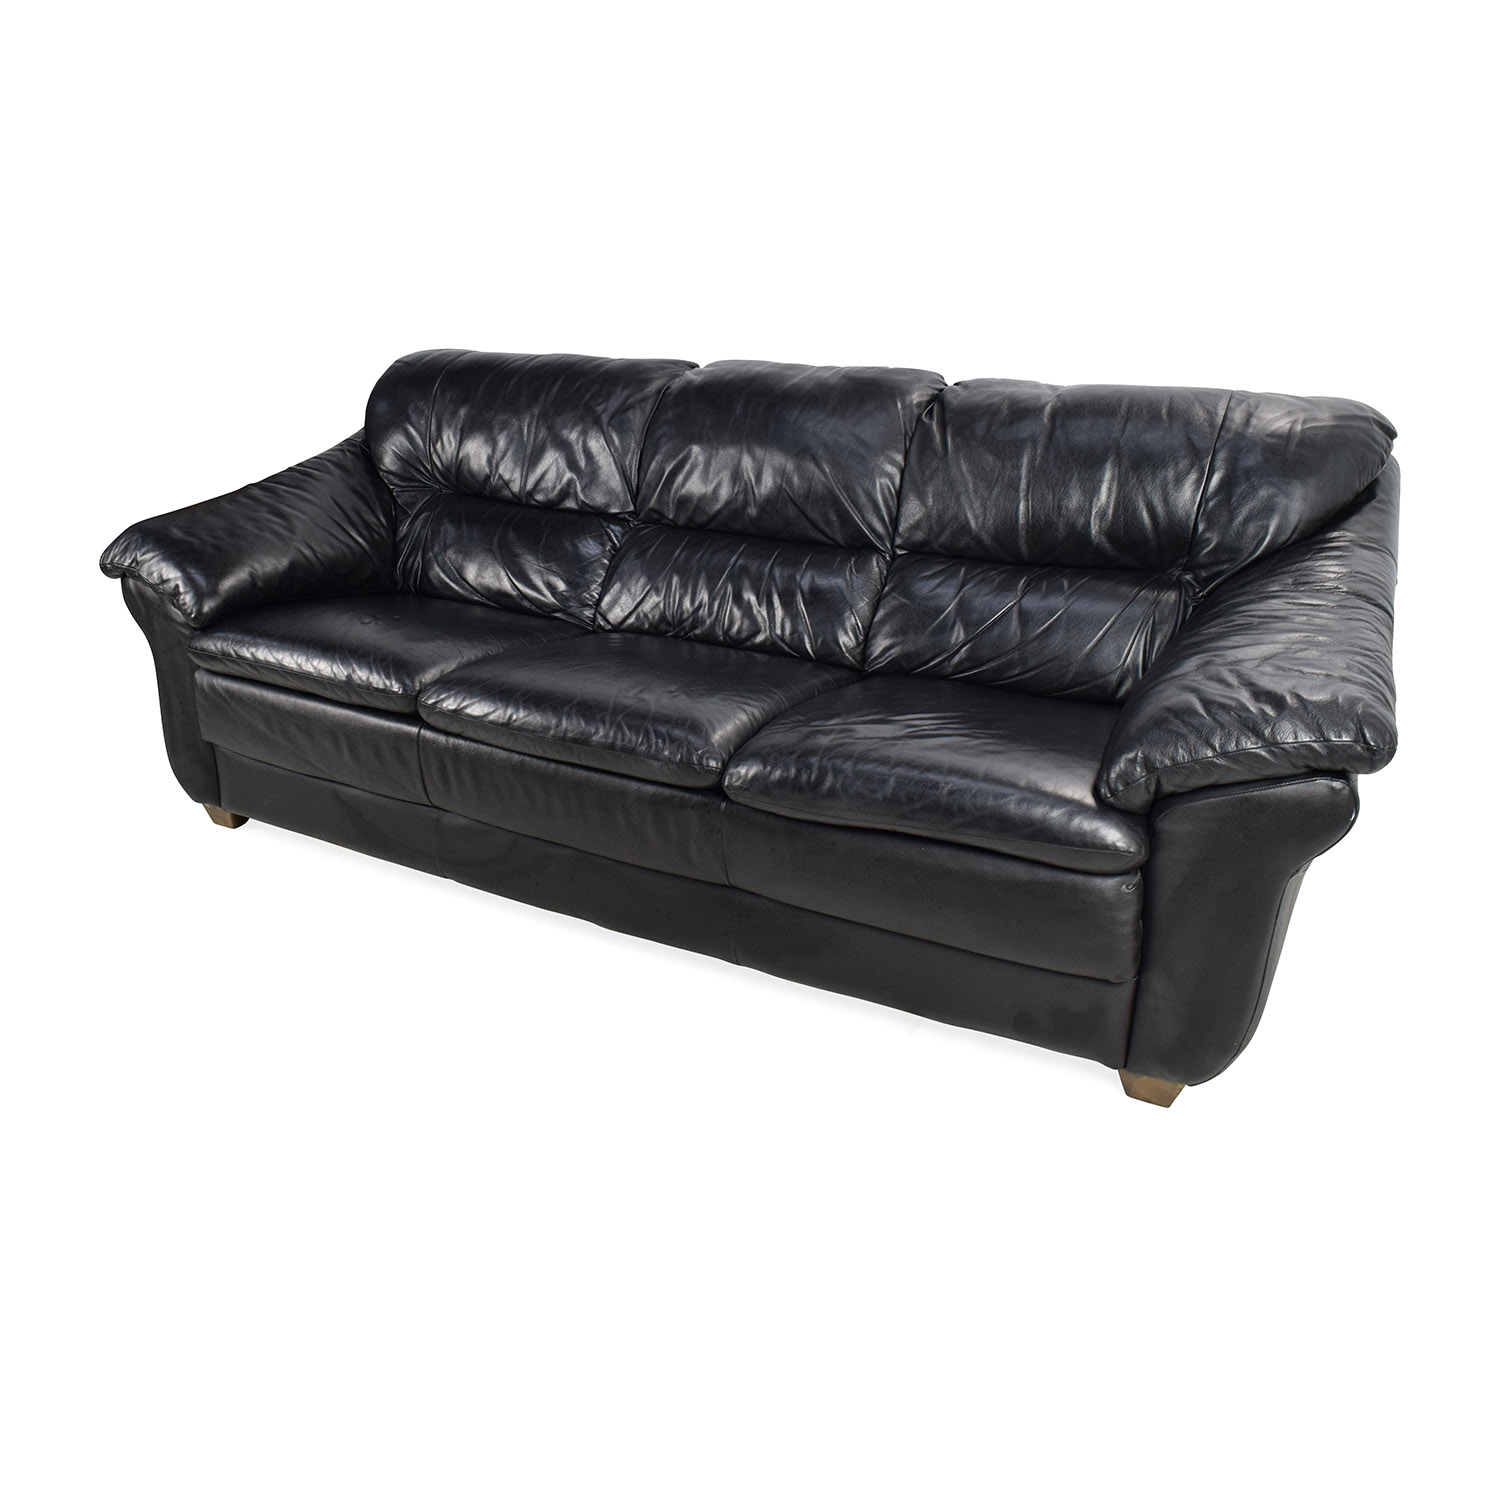 79 Off Natuzzi Natuzzi Italian Black Leather Sofa Sofas